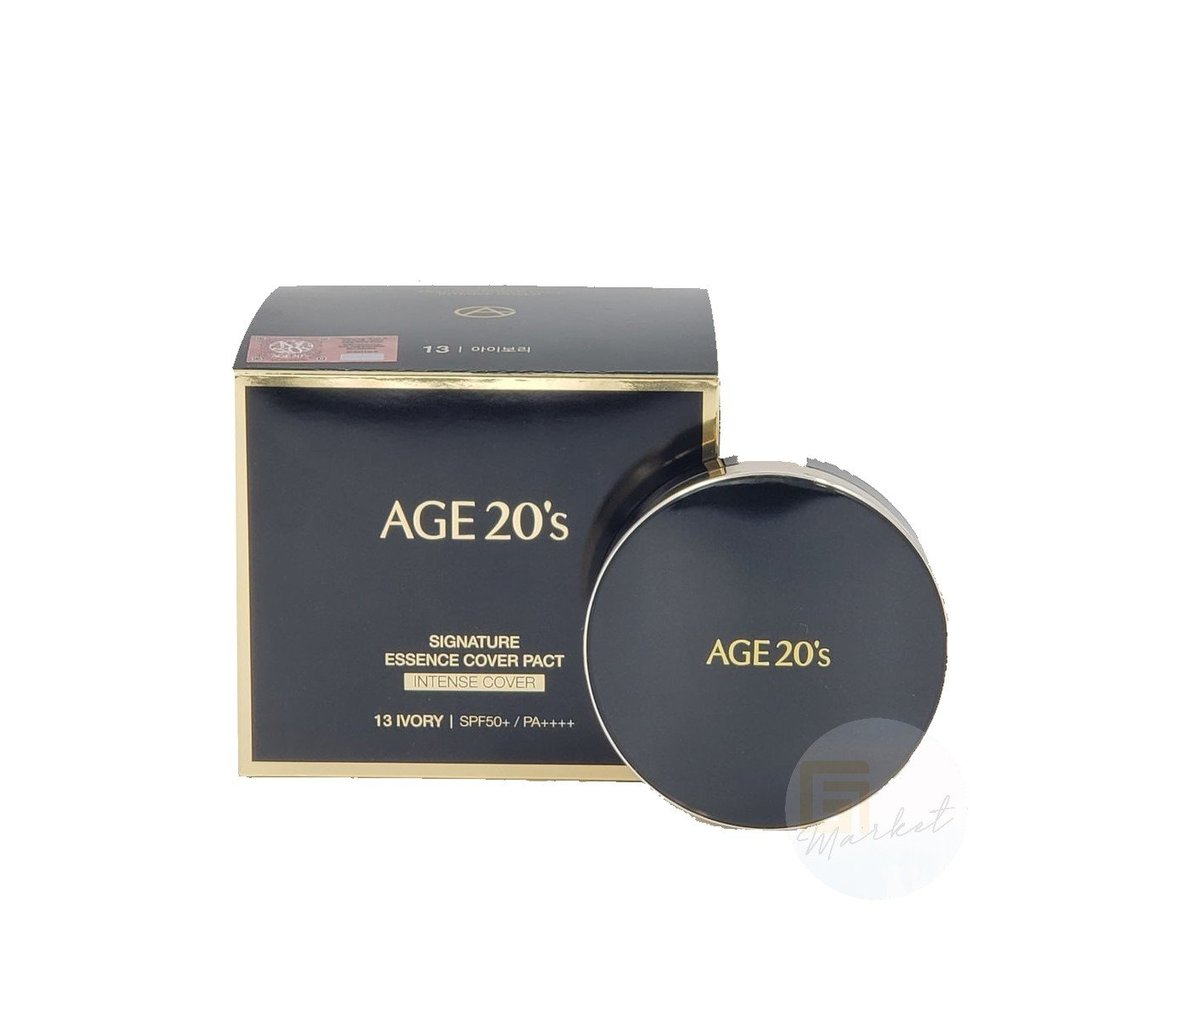 Signature Essence Cover Pact #13 SPF50+/PA+++ (Intense Cover) (Parallel Import)